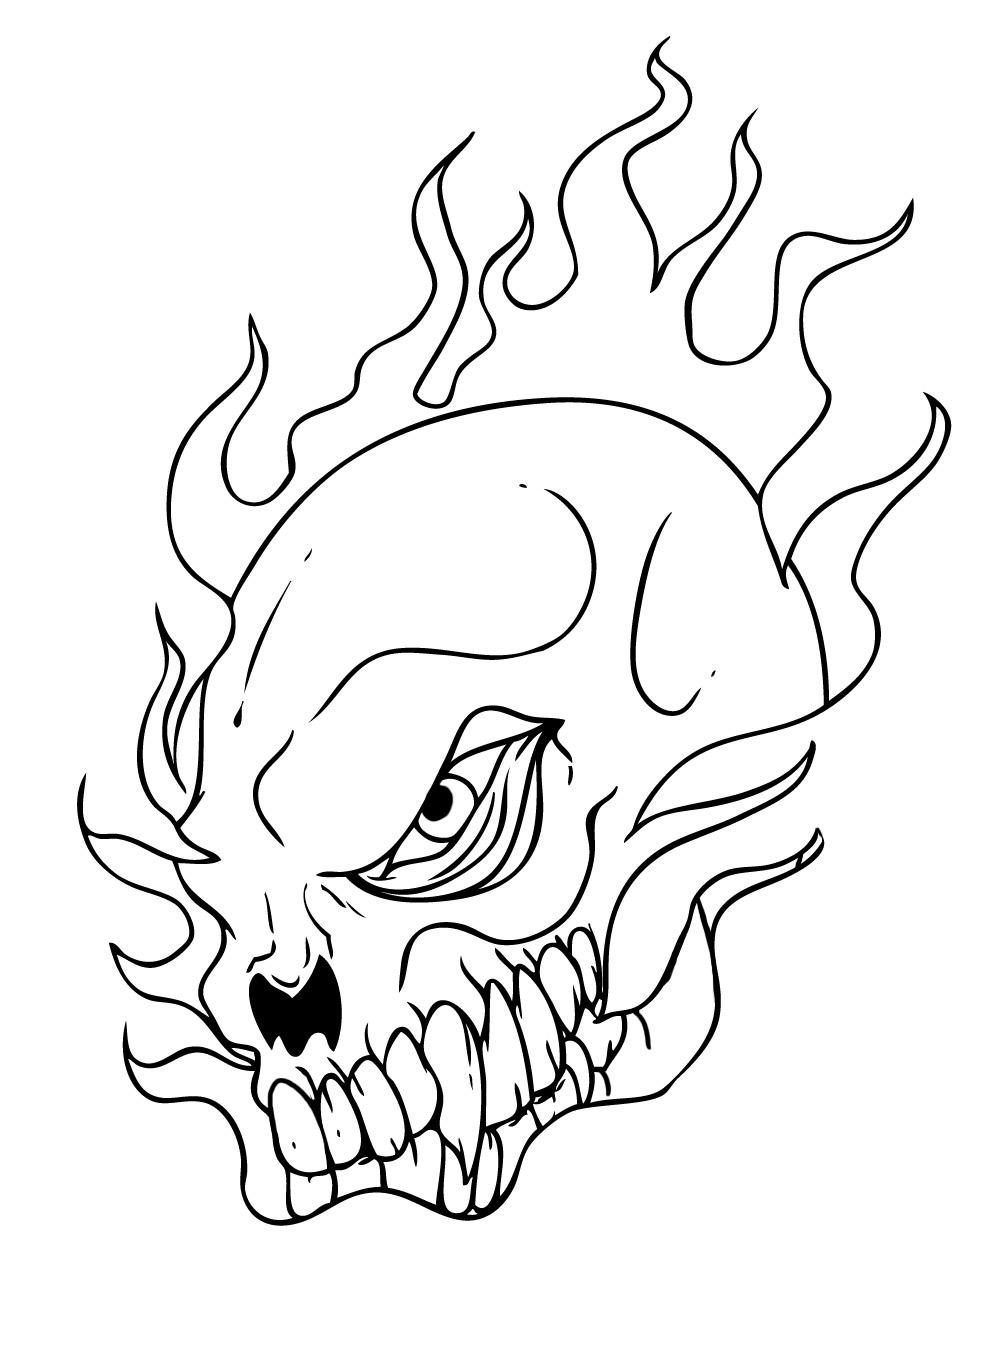 Flaming Skull Coloring Pages